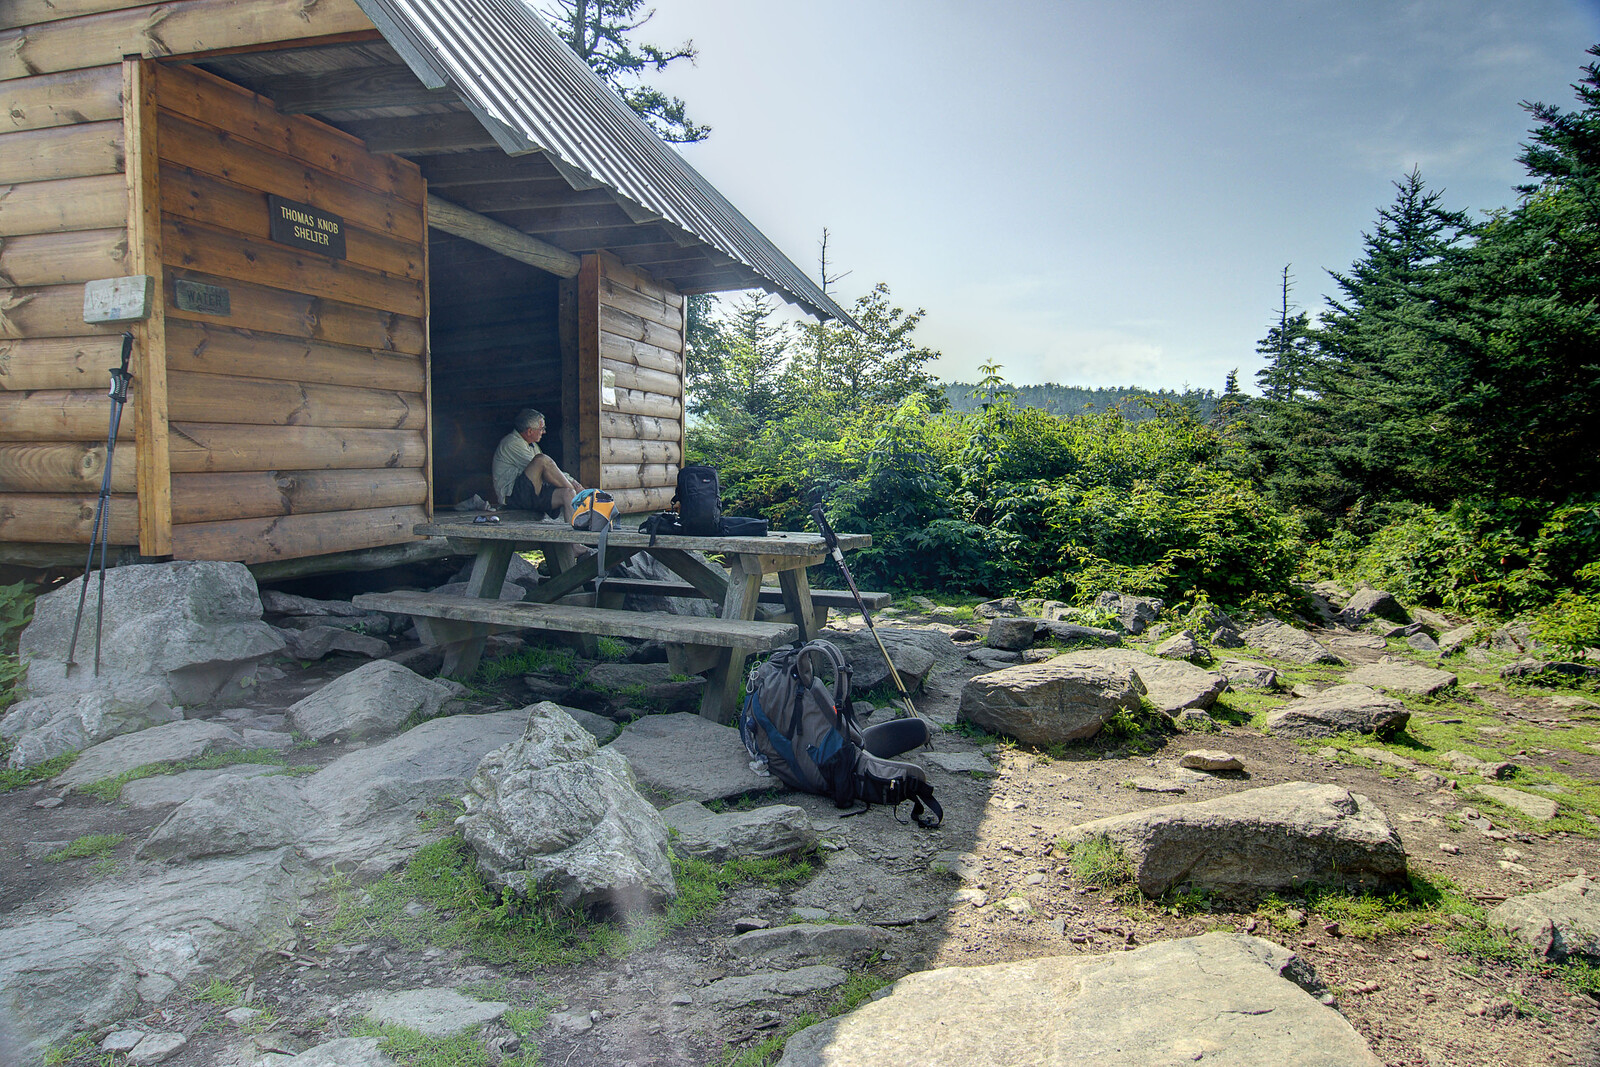 A man takes a break during a short day-hike at the Thomas Knob Shelter at Mile 491 on the Appalachian Trail in VA on Wednesday, August 1, 2012. Copyright 2012 Jason Barnette